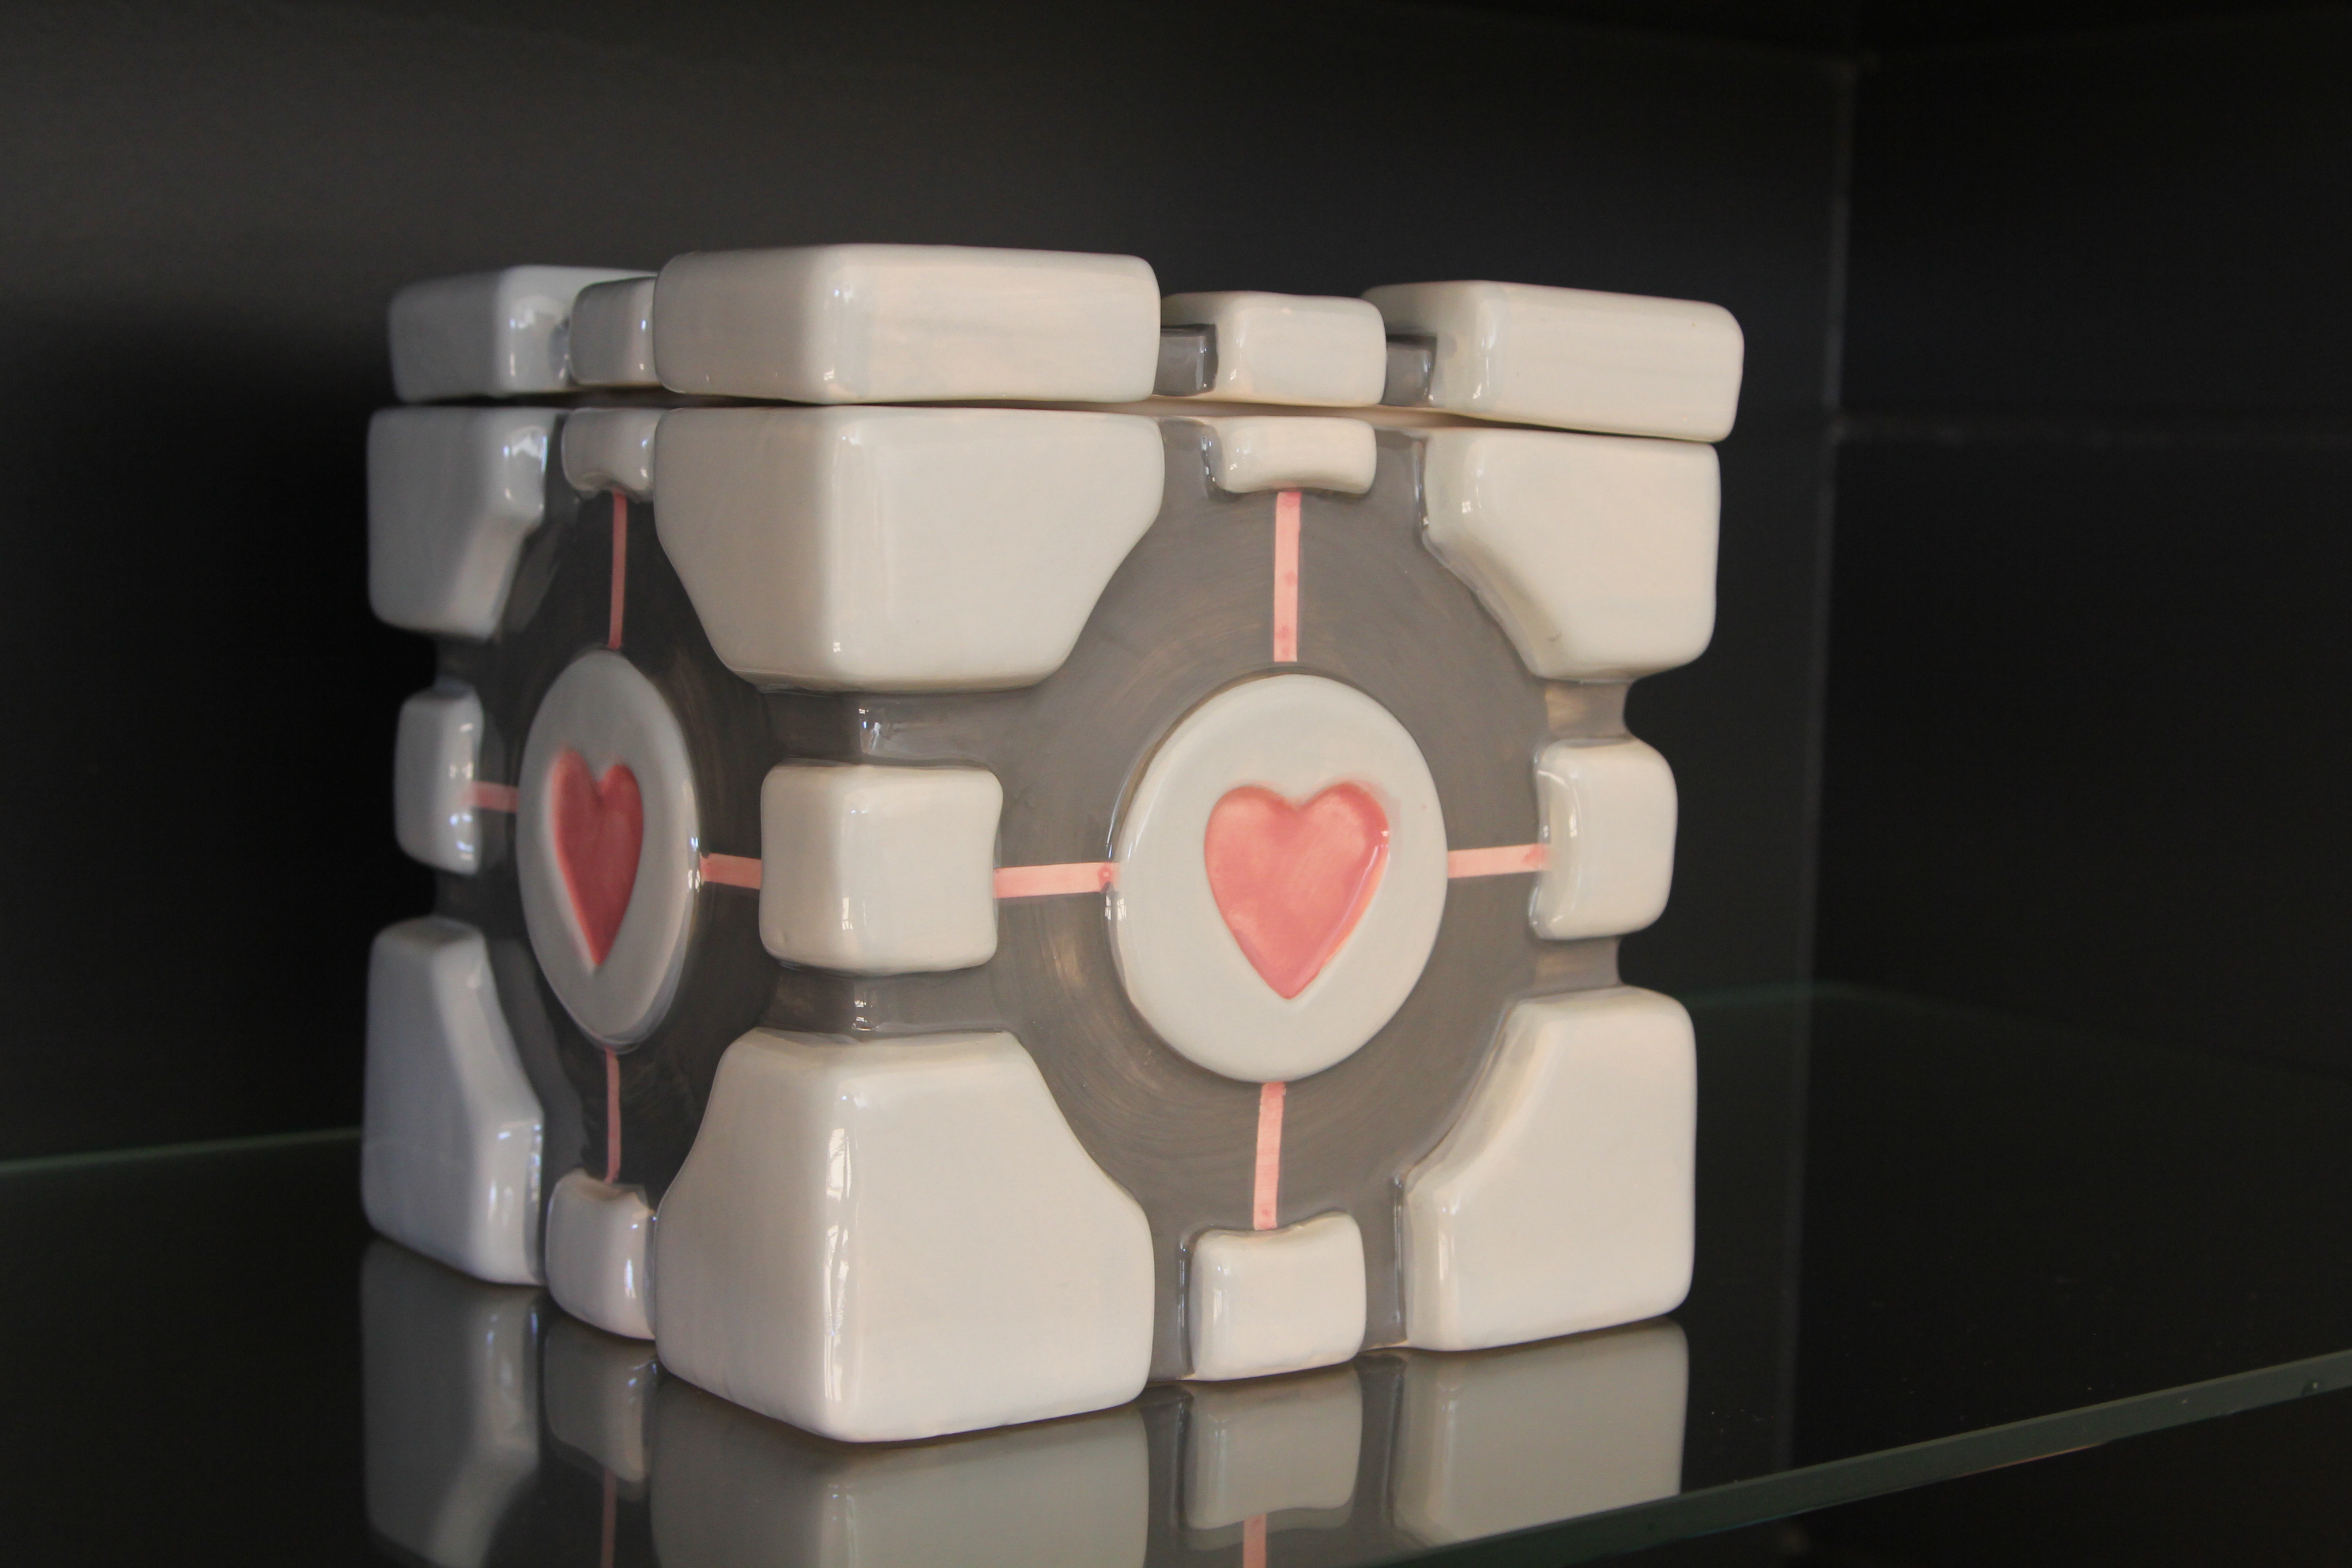 """Your Aperture Science Weighted Companion Cube will never threaten to stab you, and in fact cannot speak. If your Weighted Companion Cube does speak, please disregard its advice"". - GLaDOS, Portal."